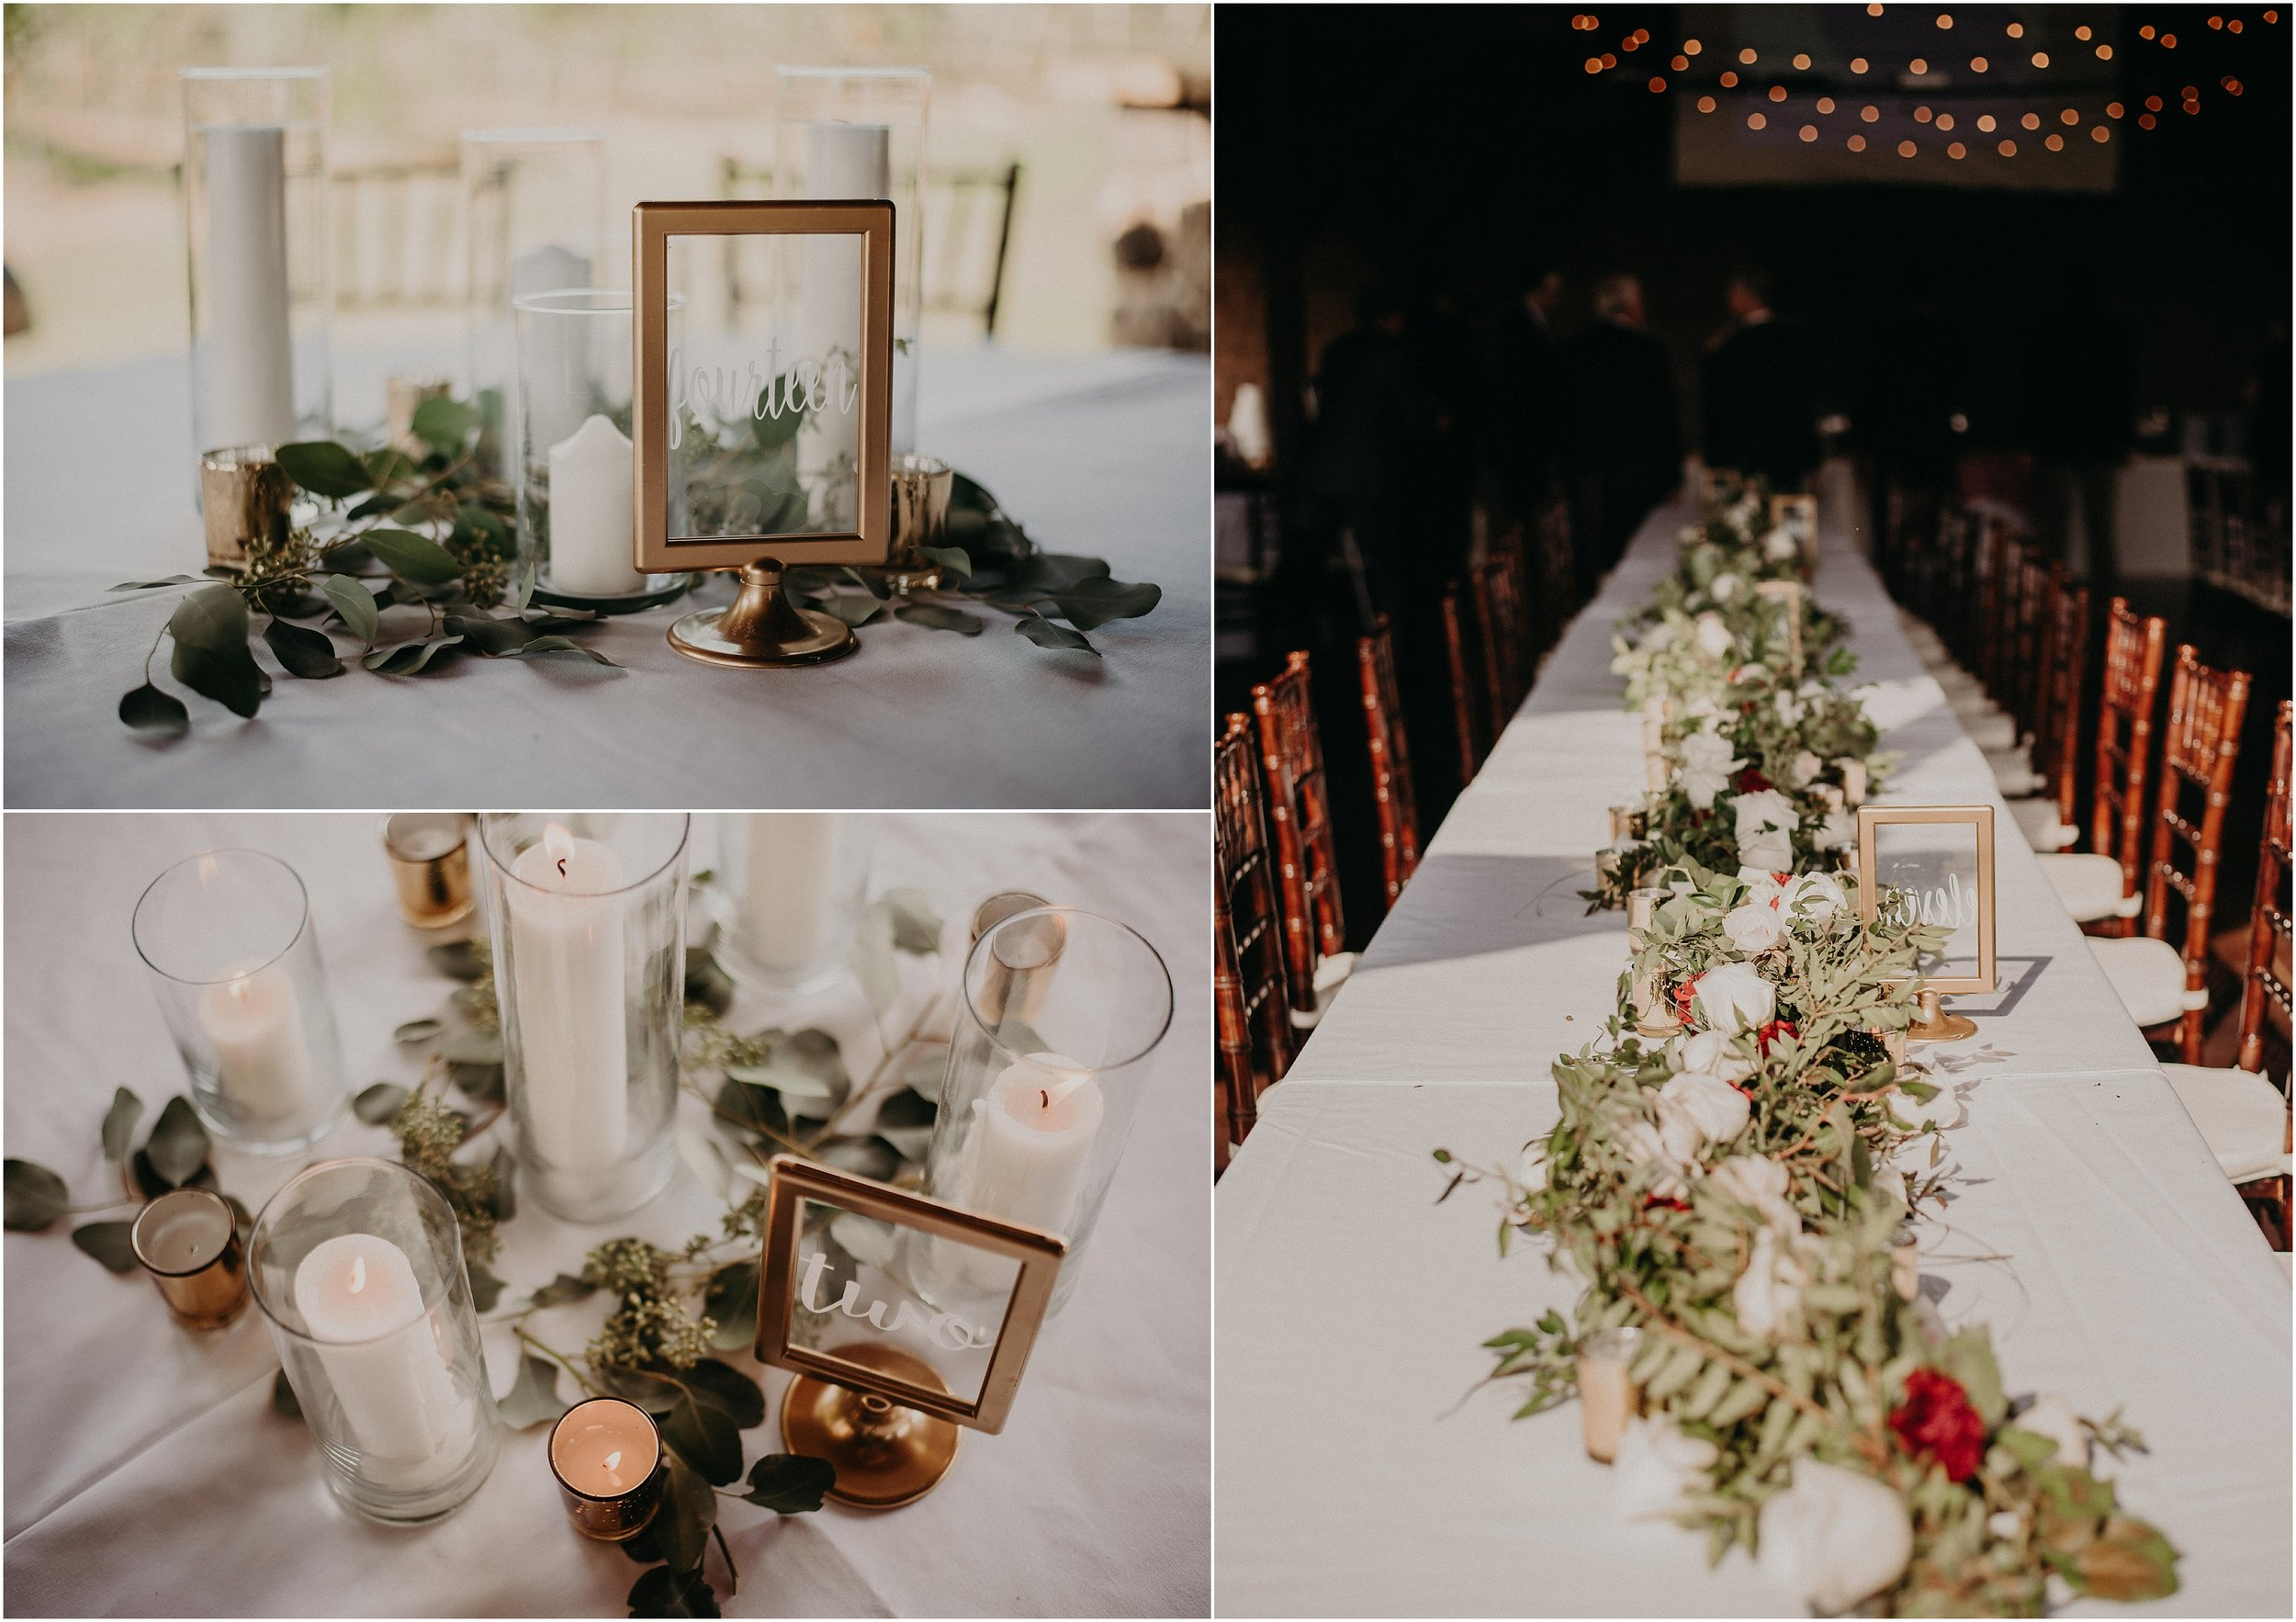 Table centerpieces for reception decor designed by Maggie Walker Weddings